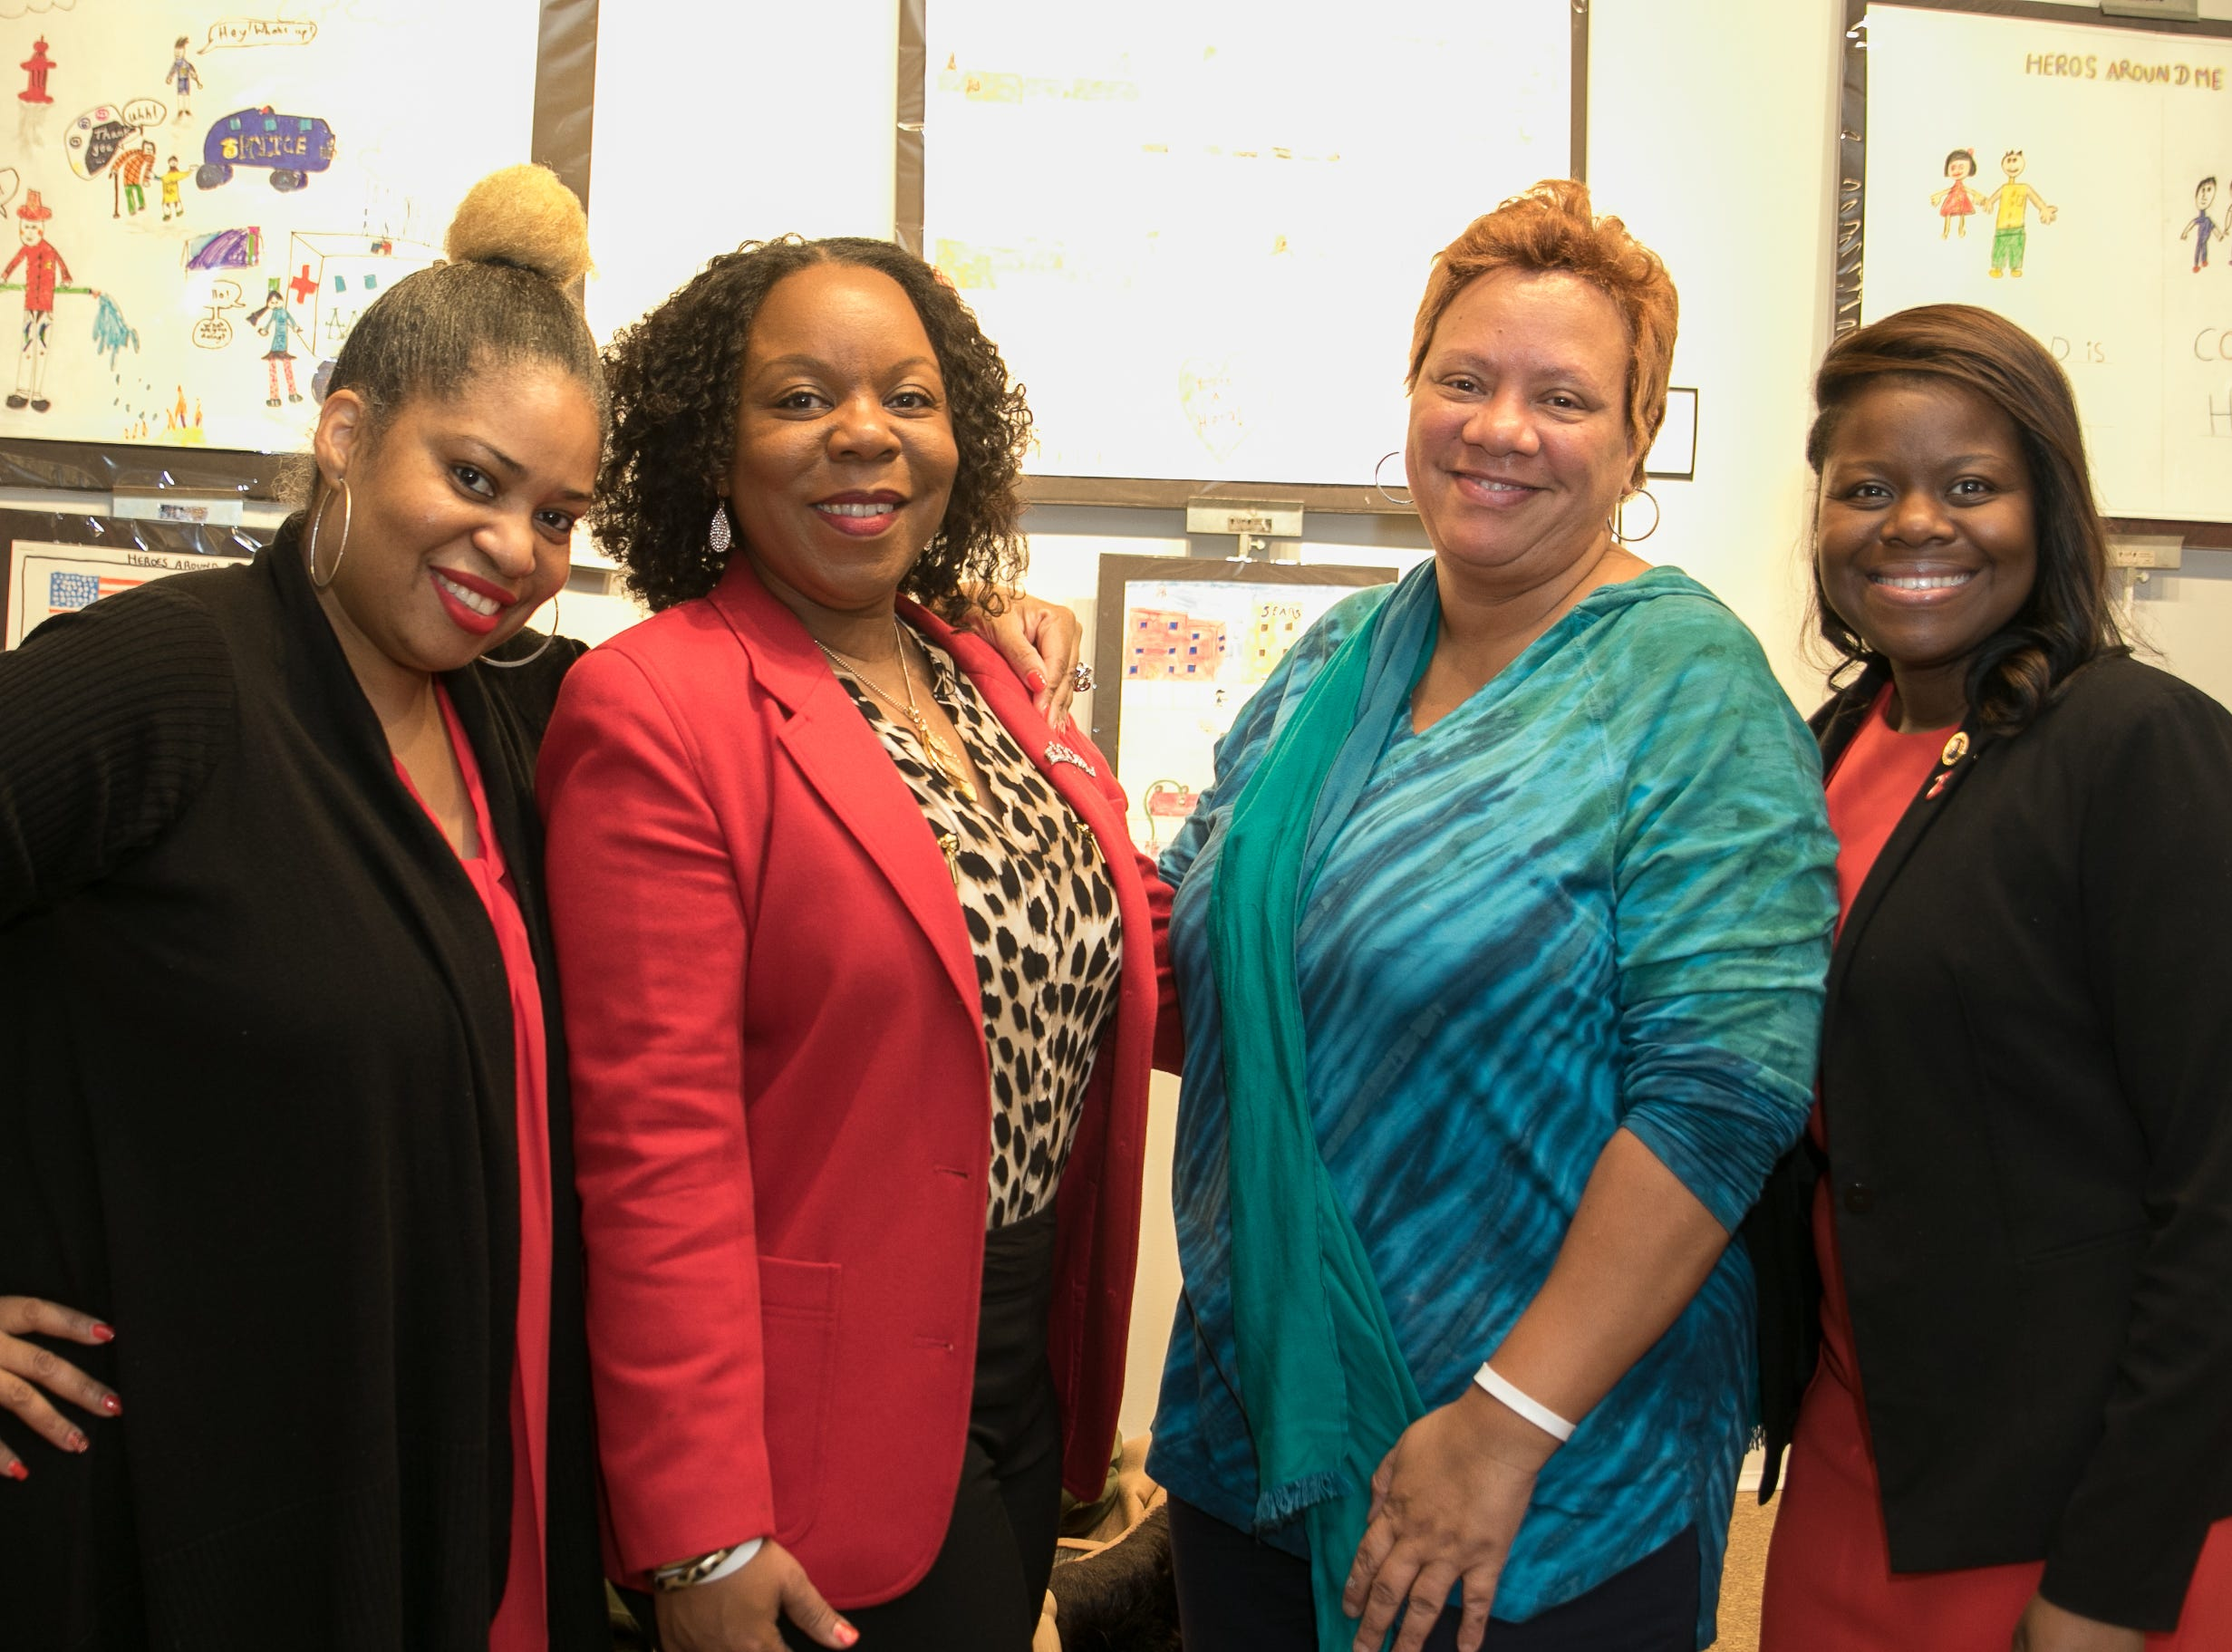 Jennifer Collins, Jacqueline Ridley, Kym Moye, Jersey City Counsilwoman Denise Ridley. The National Coalition of Black Women of Bergen and Passaic Counties held its annual Heart Healthy Go Red Event at The Hackensack Performing Arts Theater. 02/01/2019